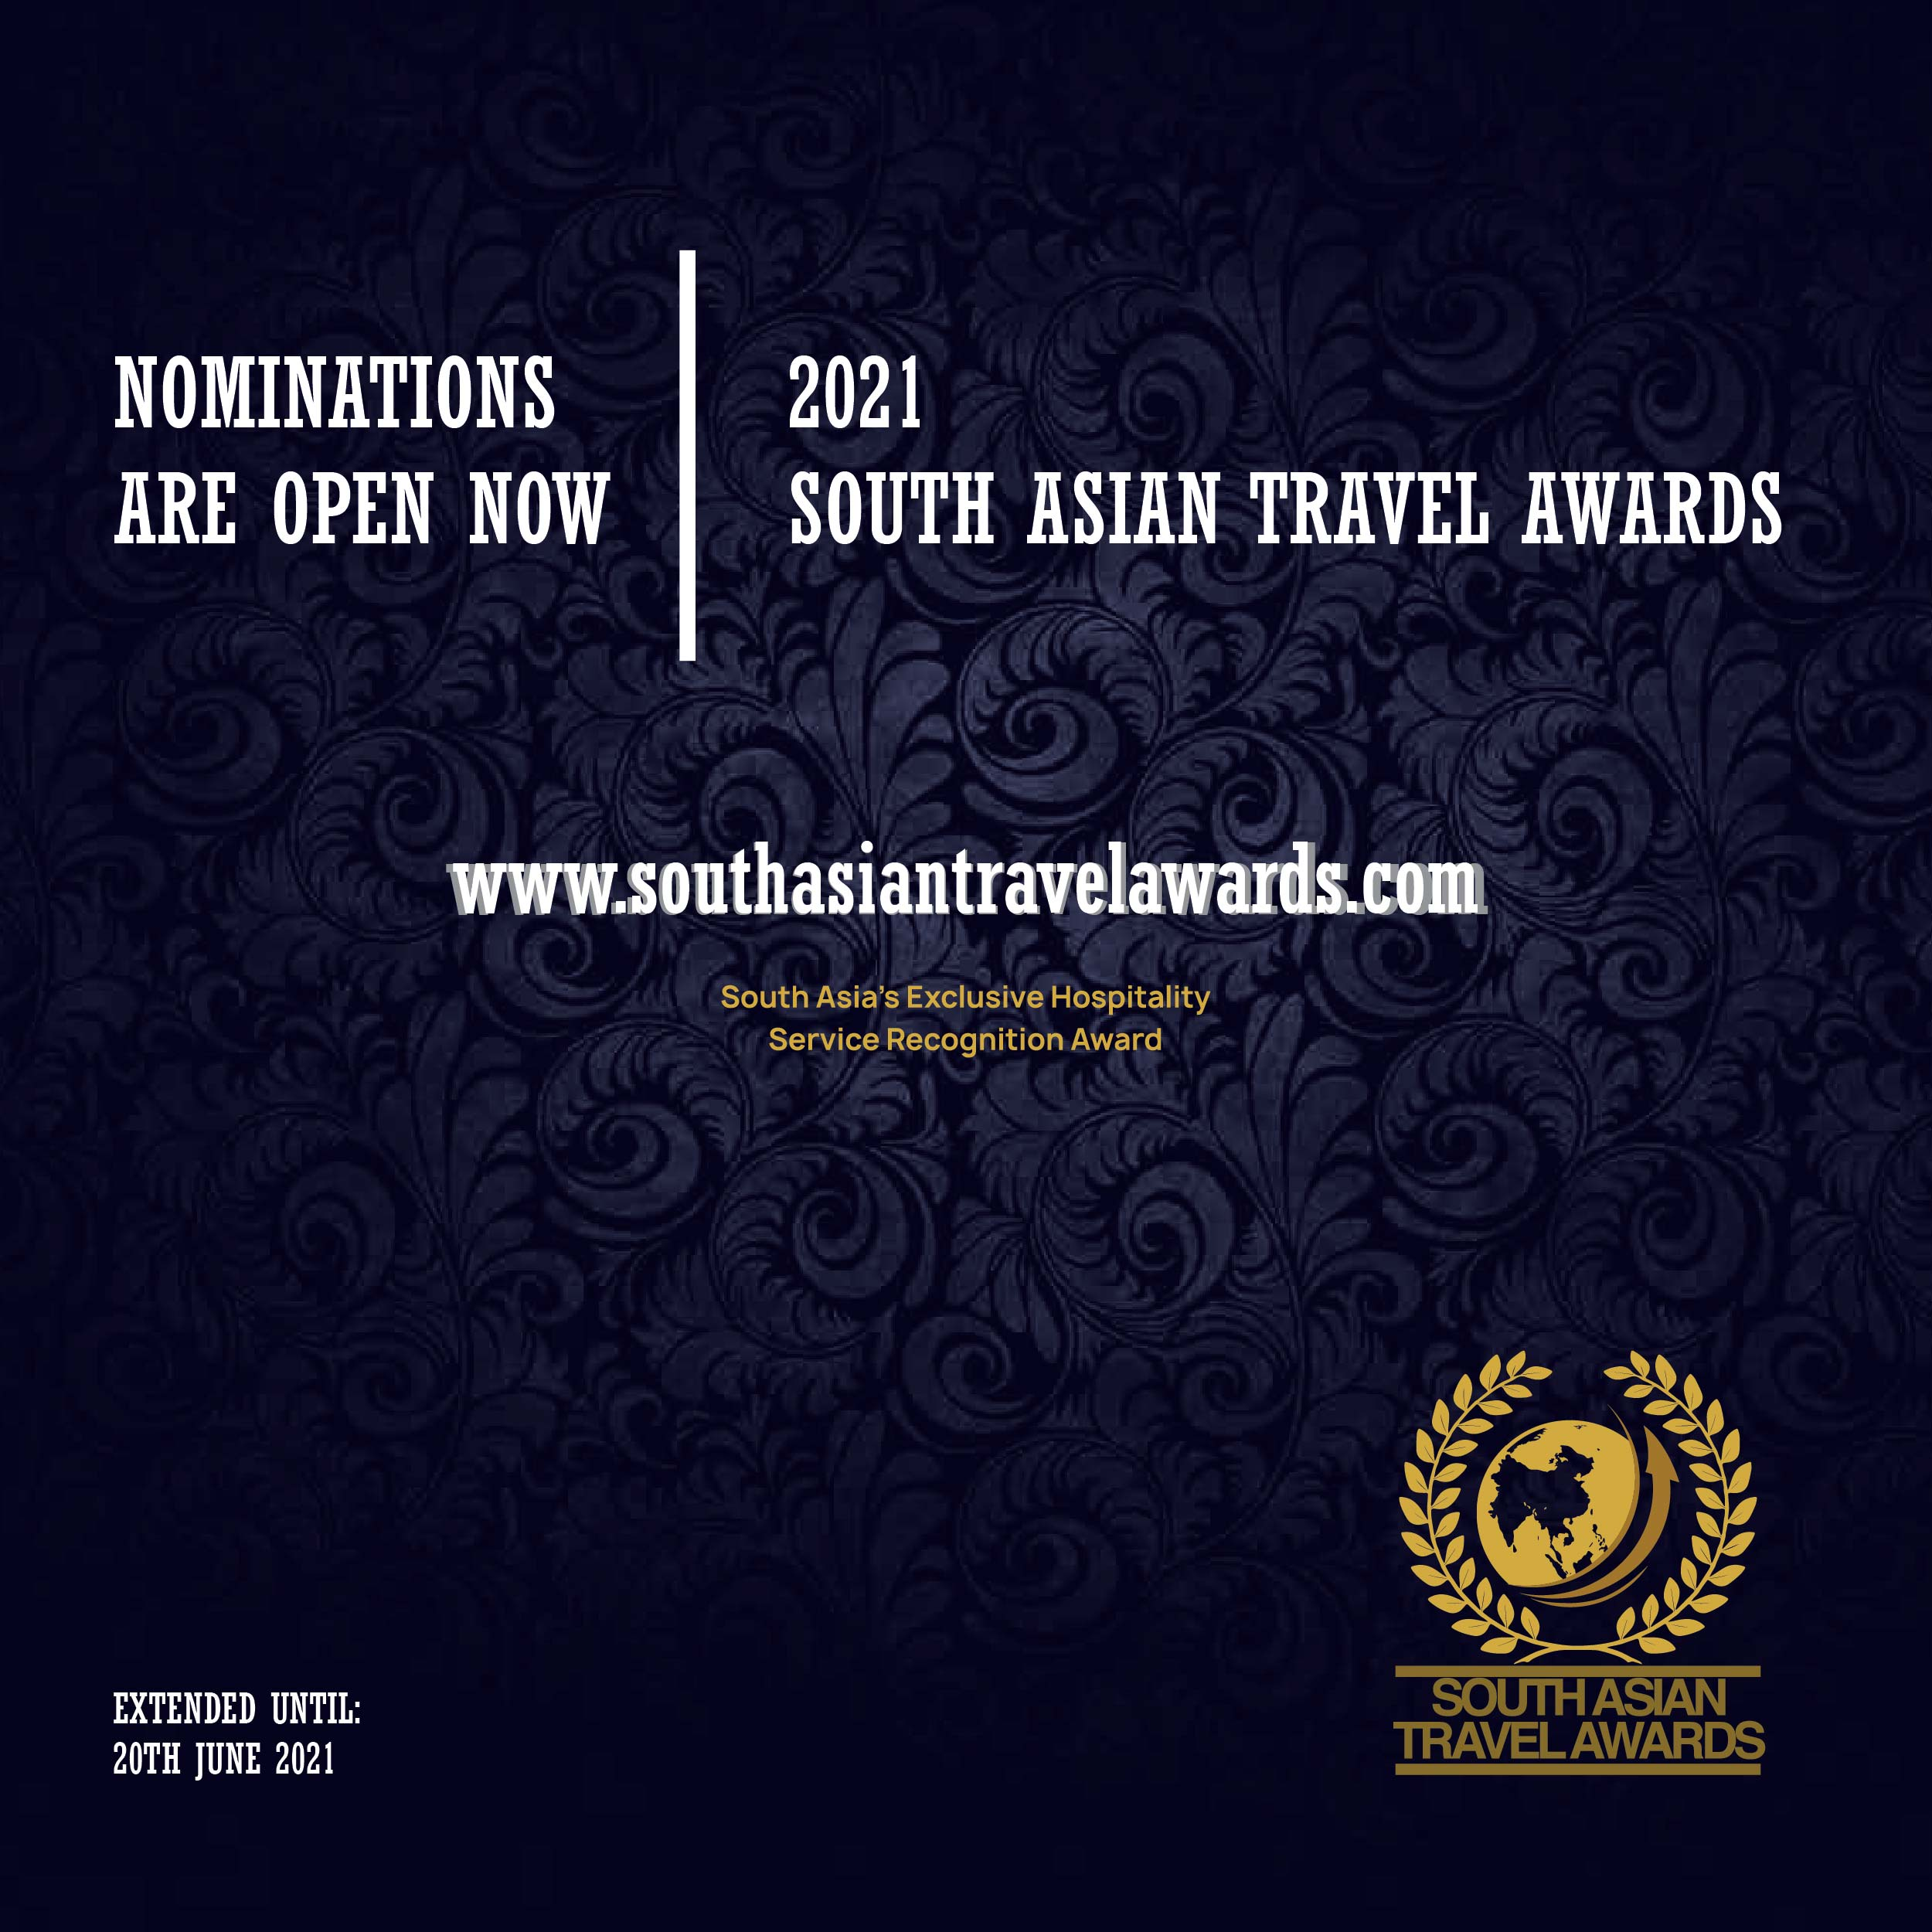 SATA NOMINATION DEADLINE EXTENDED AMID NEW WAVE OF COVID ACROSS THE REGION